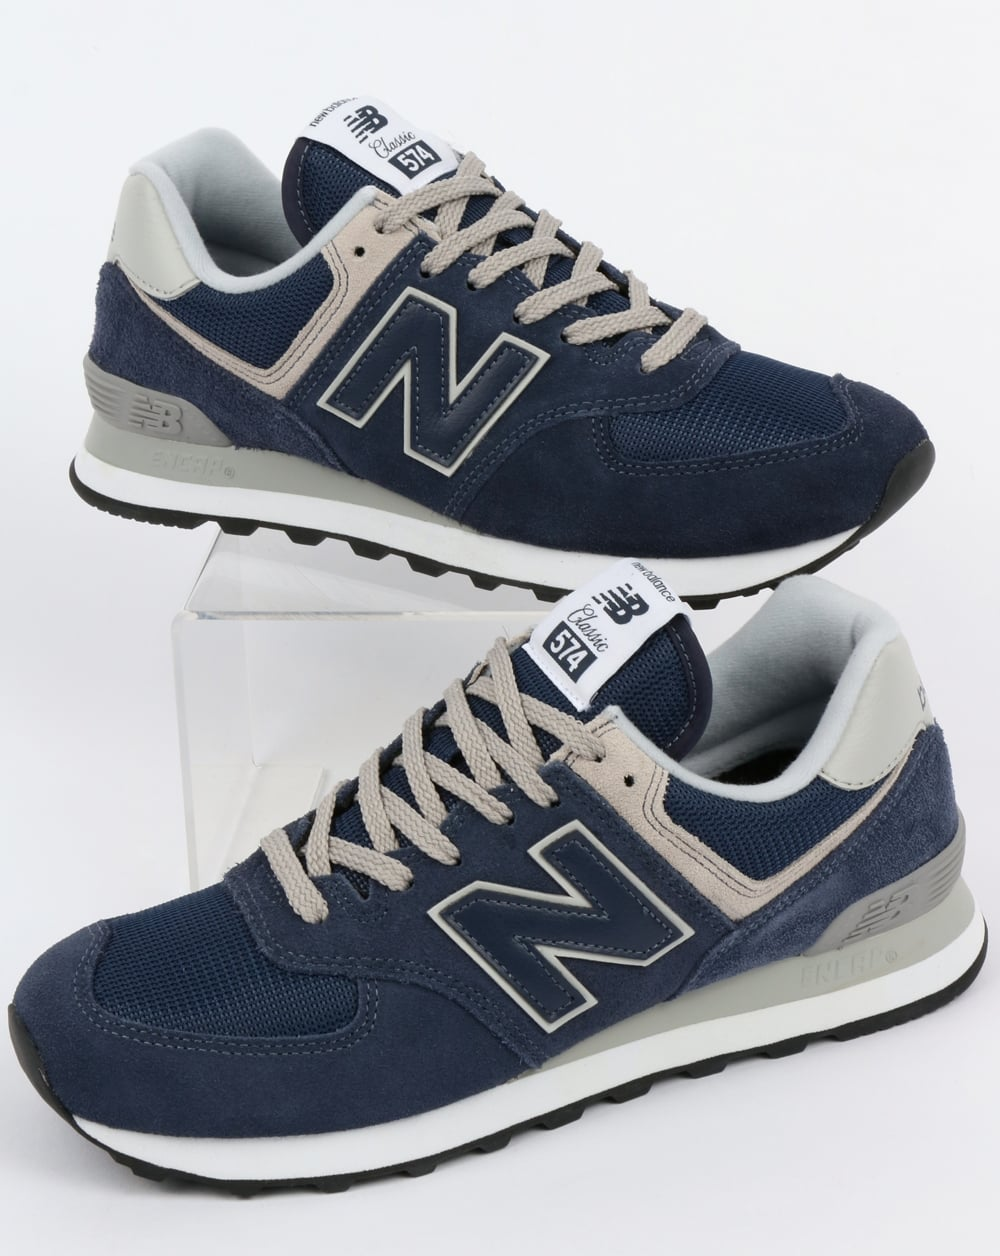 New Balance New Balance 574 Trainers Navy Grey 022288283a12